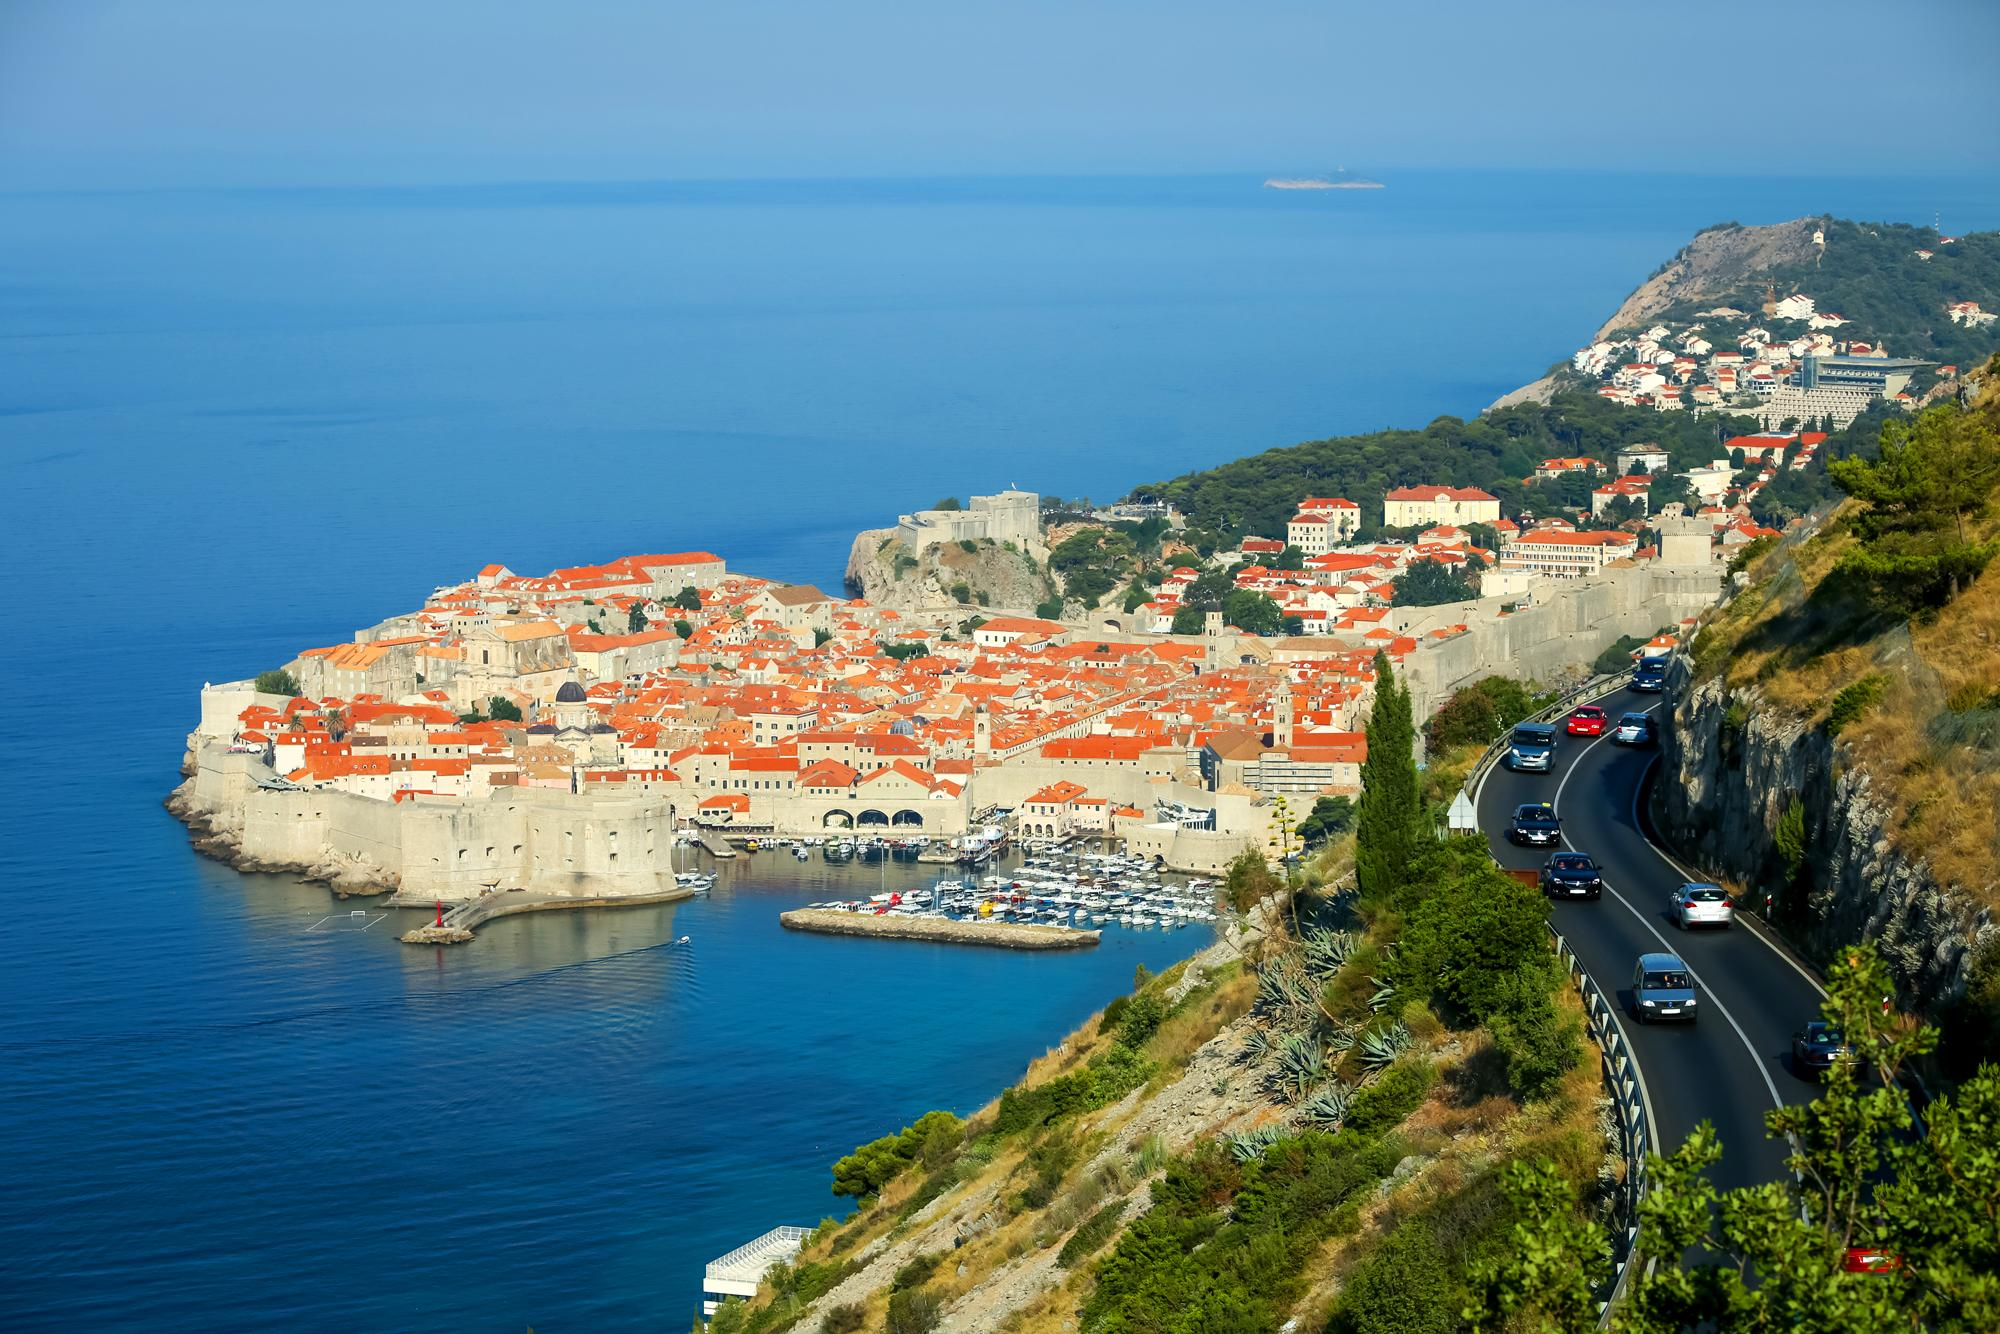 Croatia s Best Places Are Seen by Driving This 7-Day Road Trip Itinerary bc6ced49c0